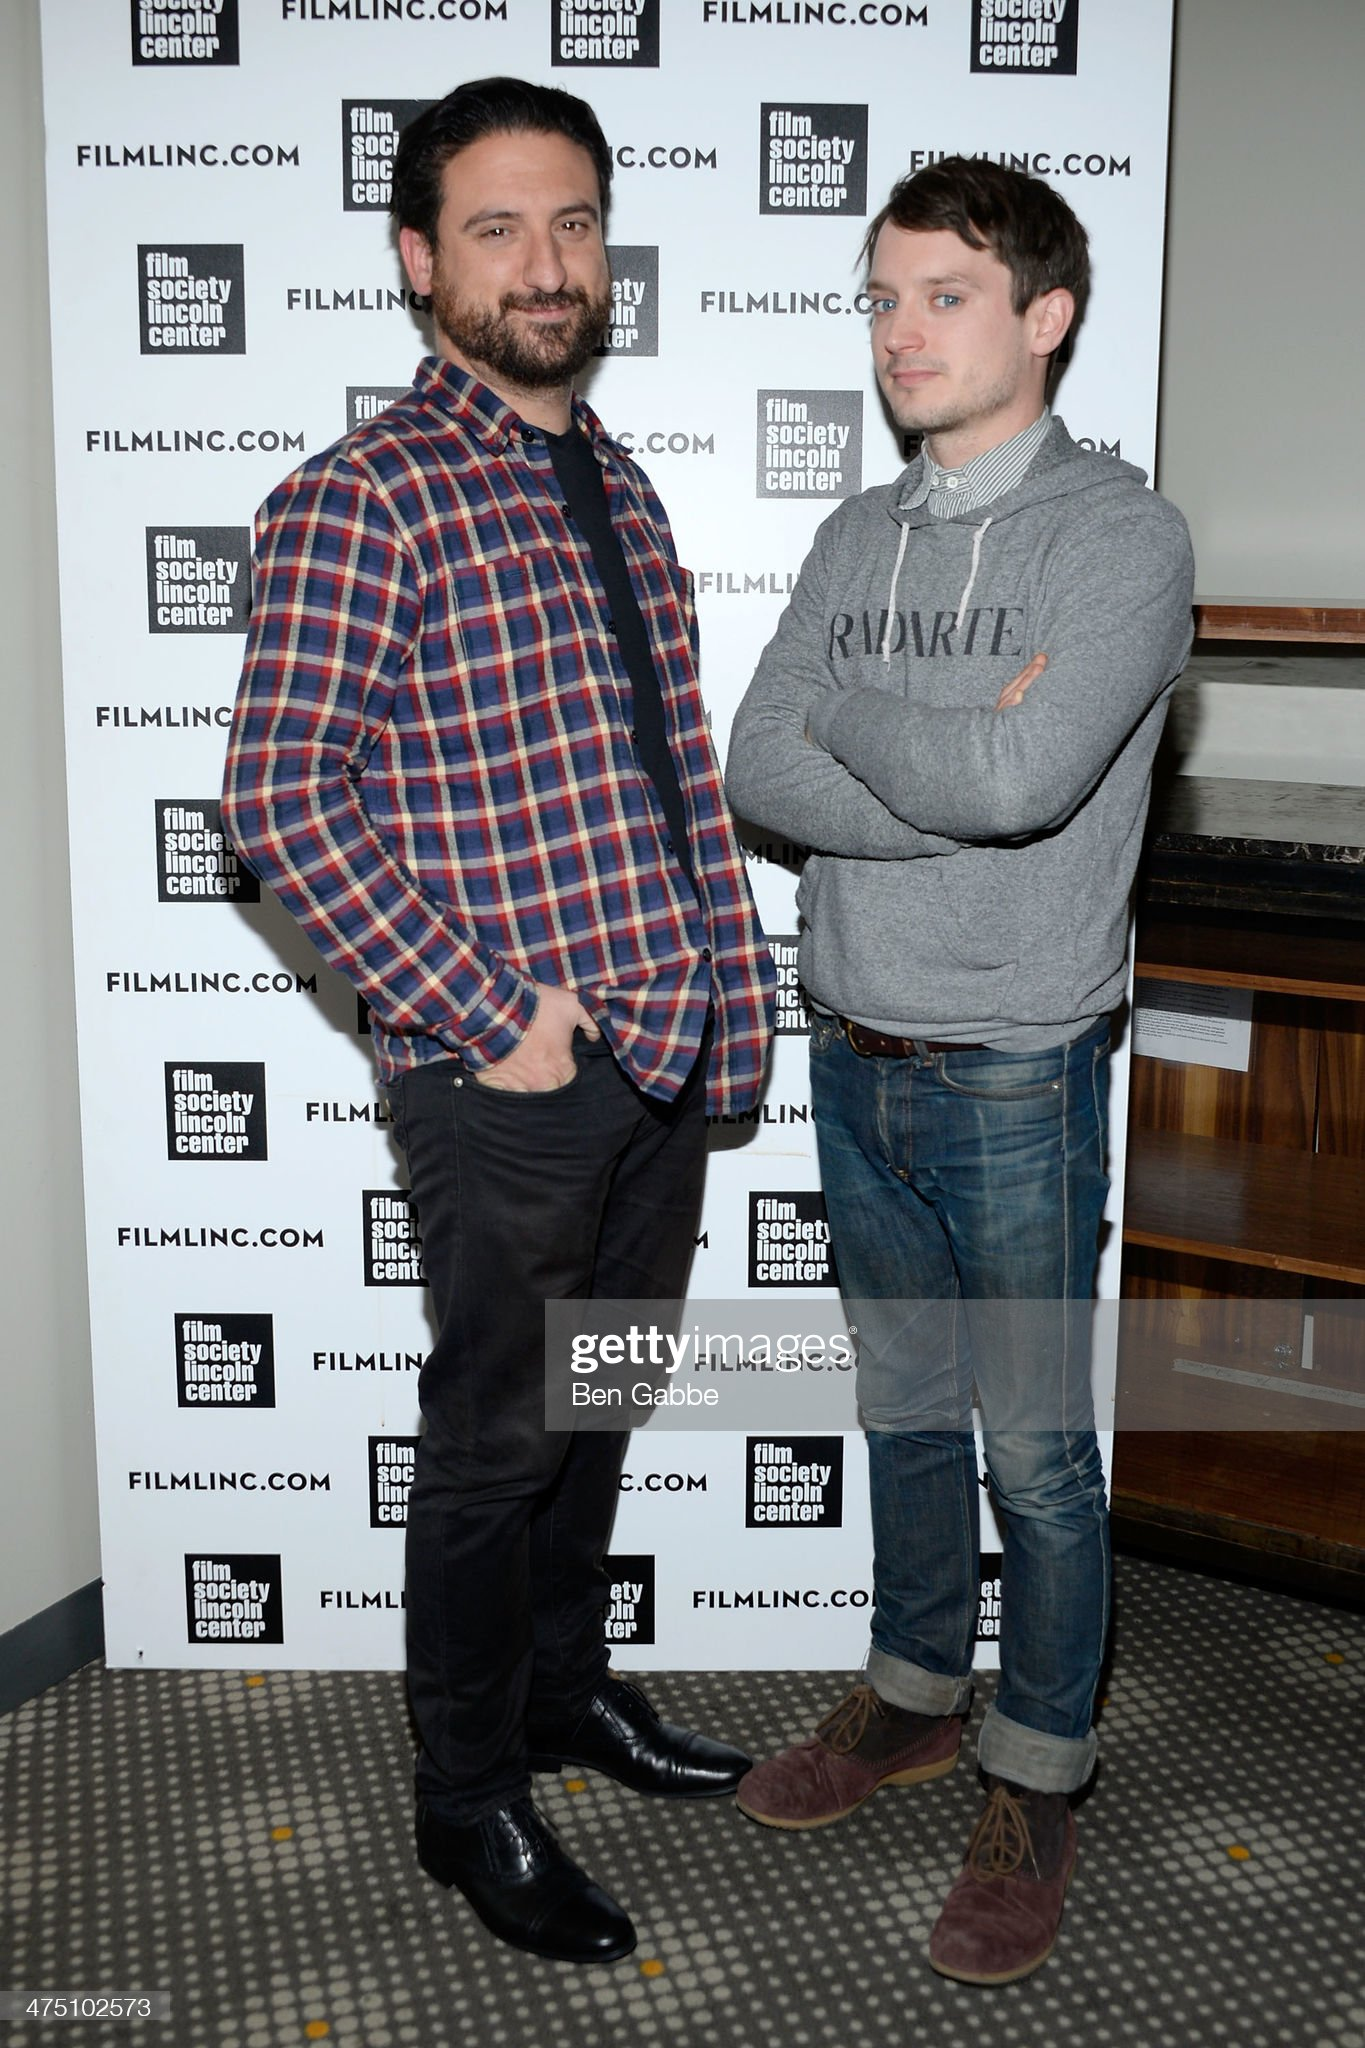 ¿Cuánto mide Eugenio Mira? - Altura Director-eugenio-mira-and-actor-elijah-wood-attend-the-film-society-picture-id475102573?s=2048x2048